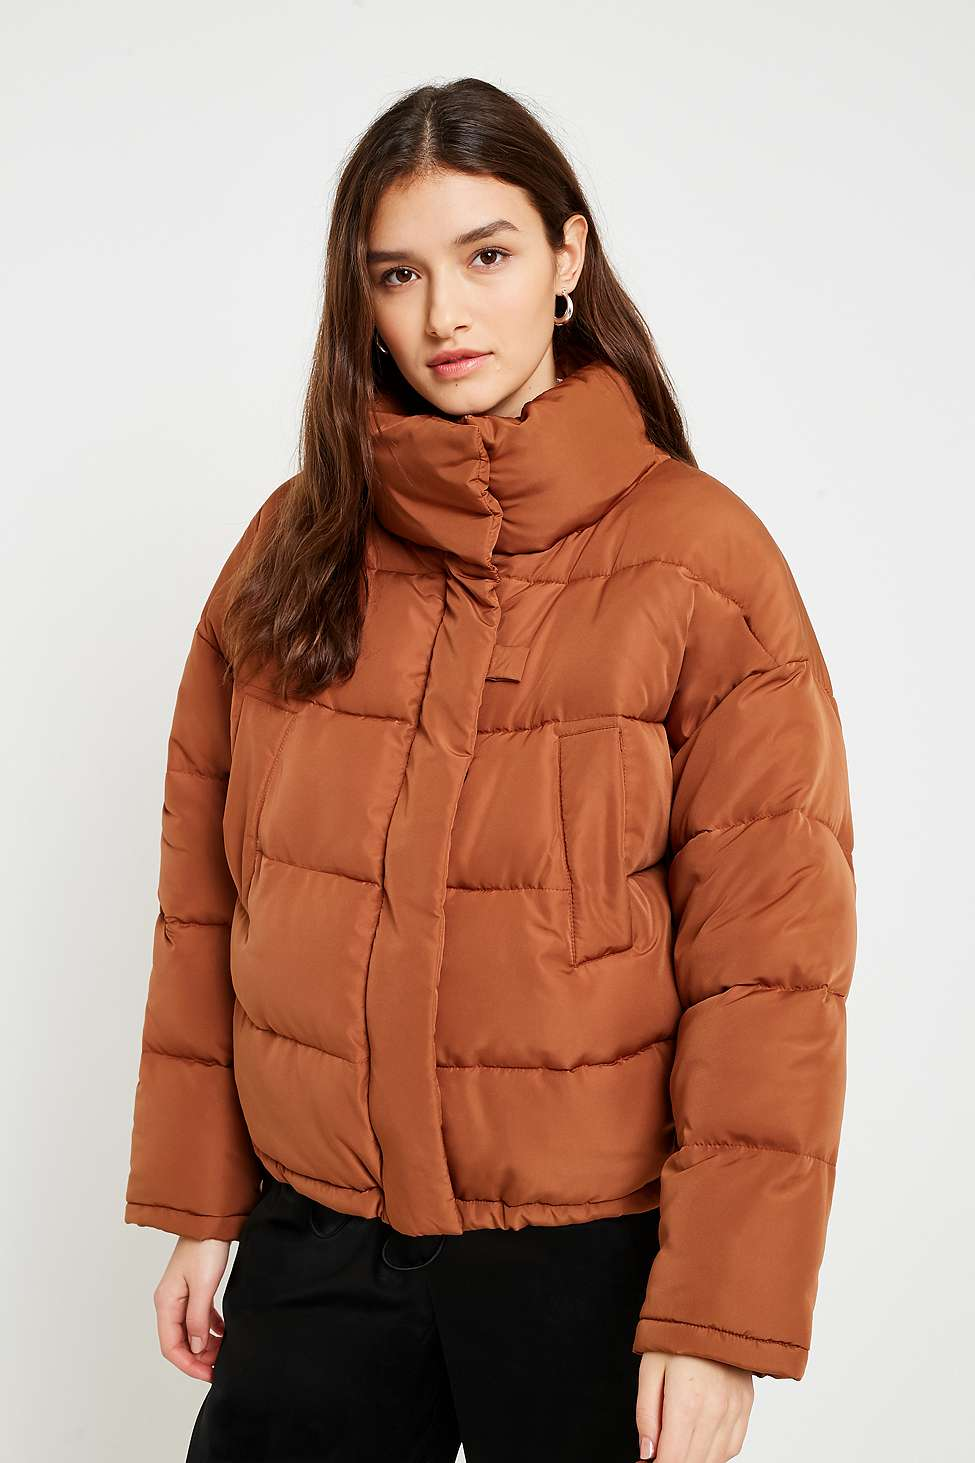 Slide View: 1: Light Before Dark Brown Pillow Puffer Jacket